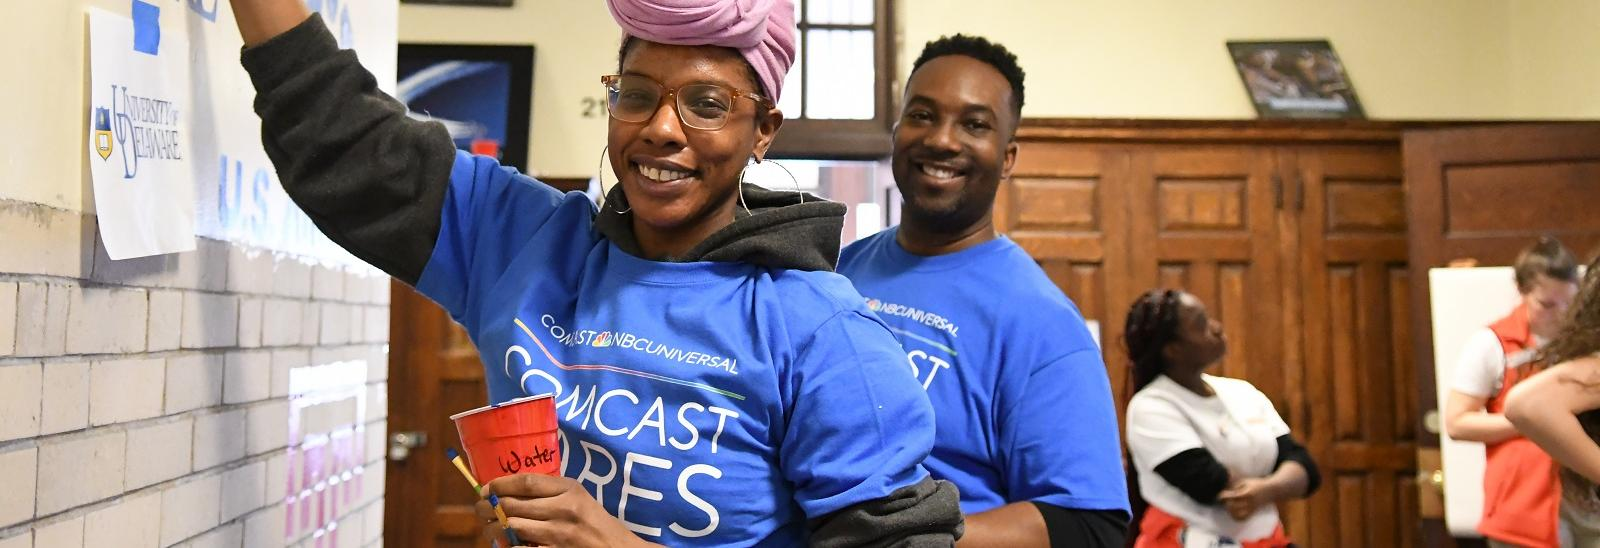 Volunteers at Comcast Cares Day 2018.